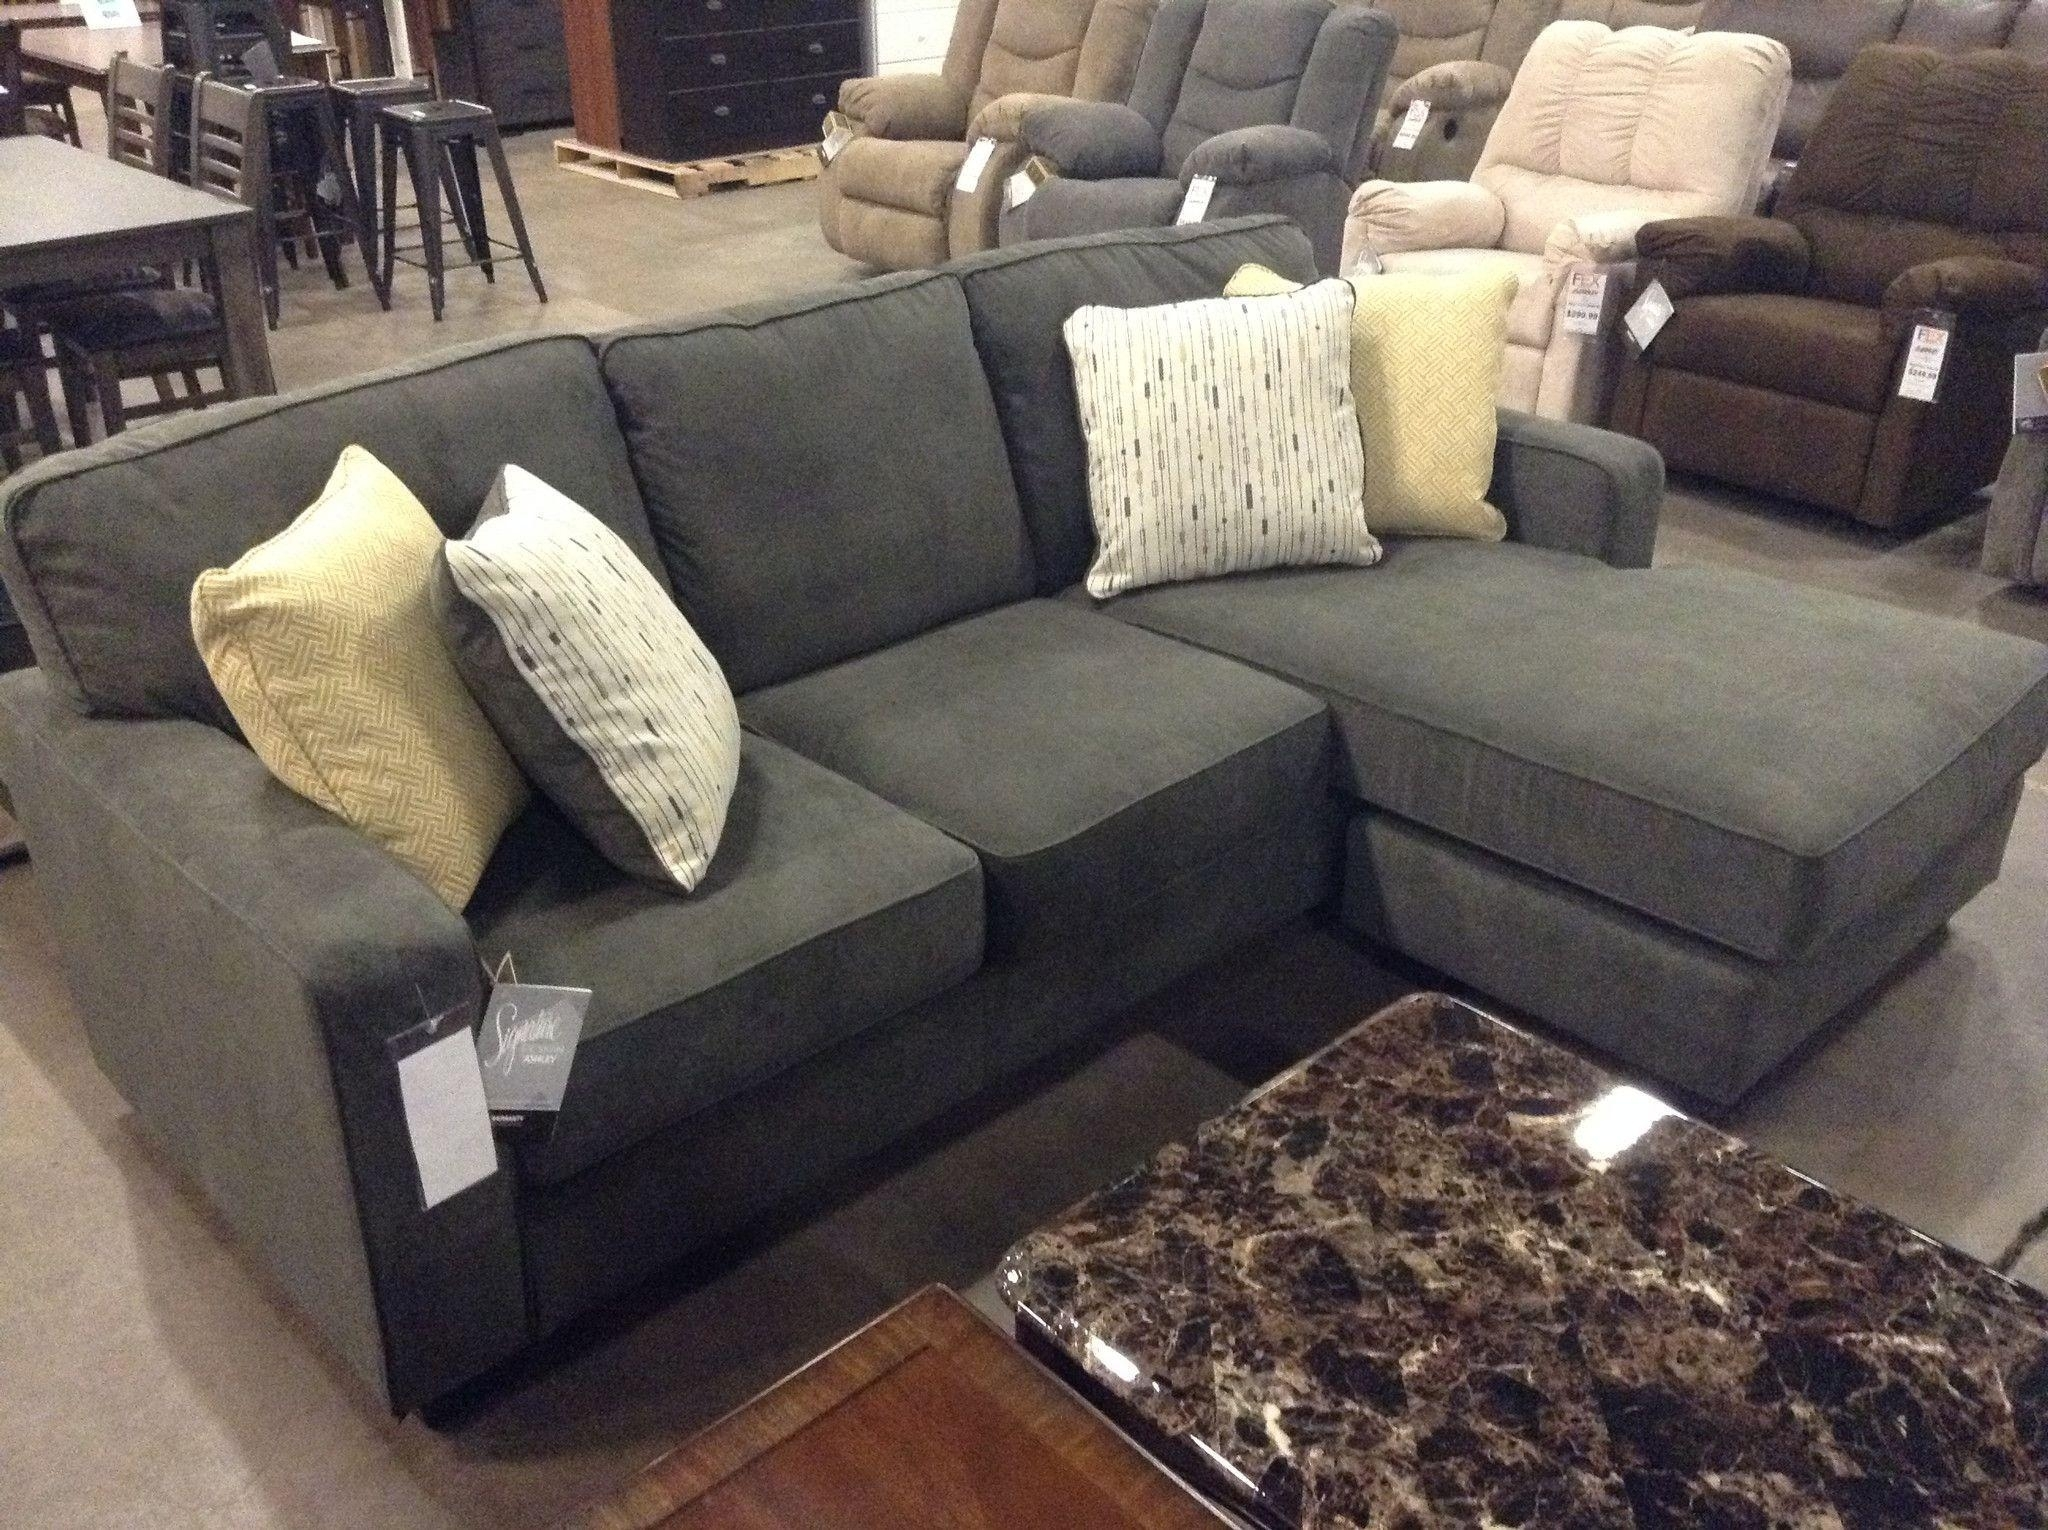 Furniture : Sectional Couch Costco Unique Dark Gray Shayla Sofa Intended For Virginia Beach Sectional Sofas (Image 7 of 10)